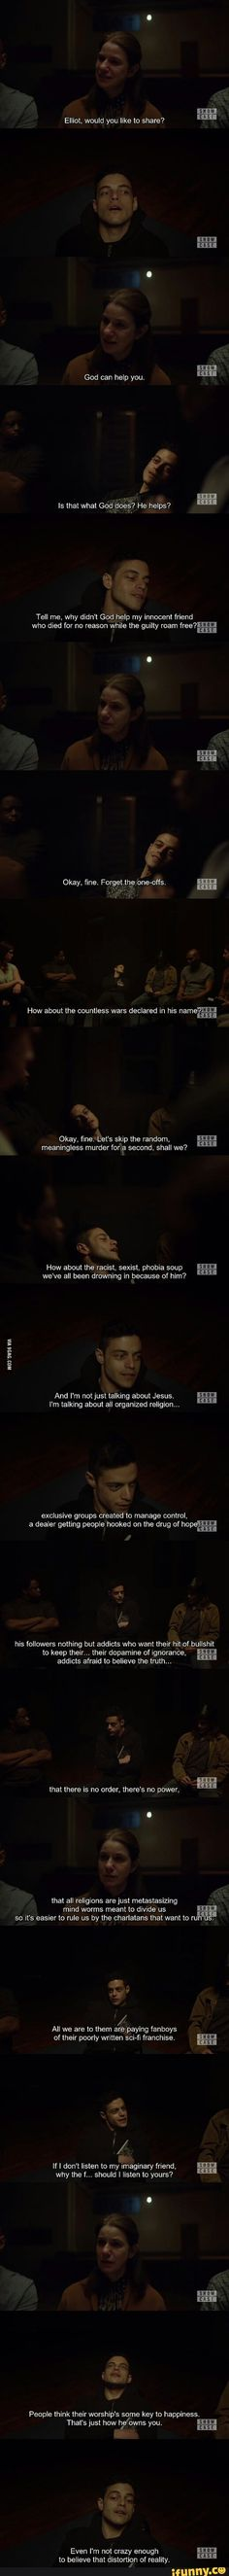 Mr. Robot Elliot's religion quote